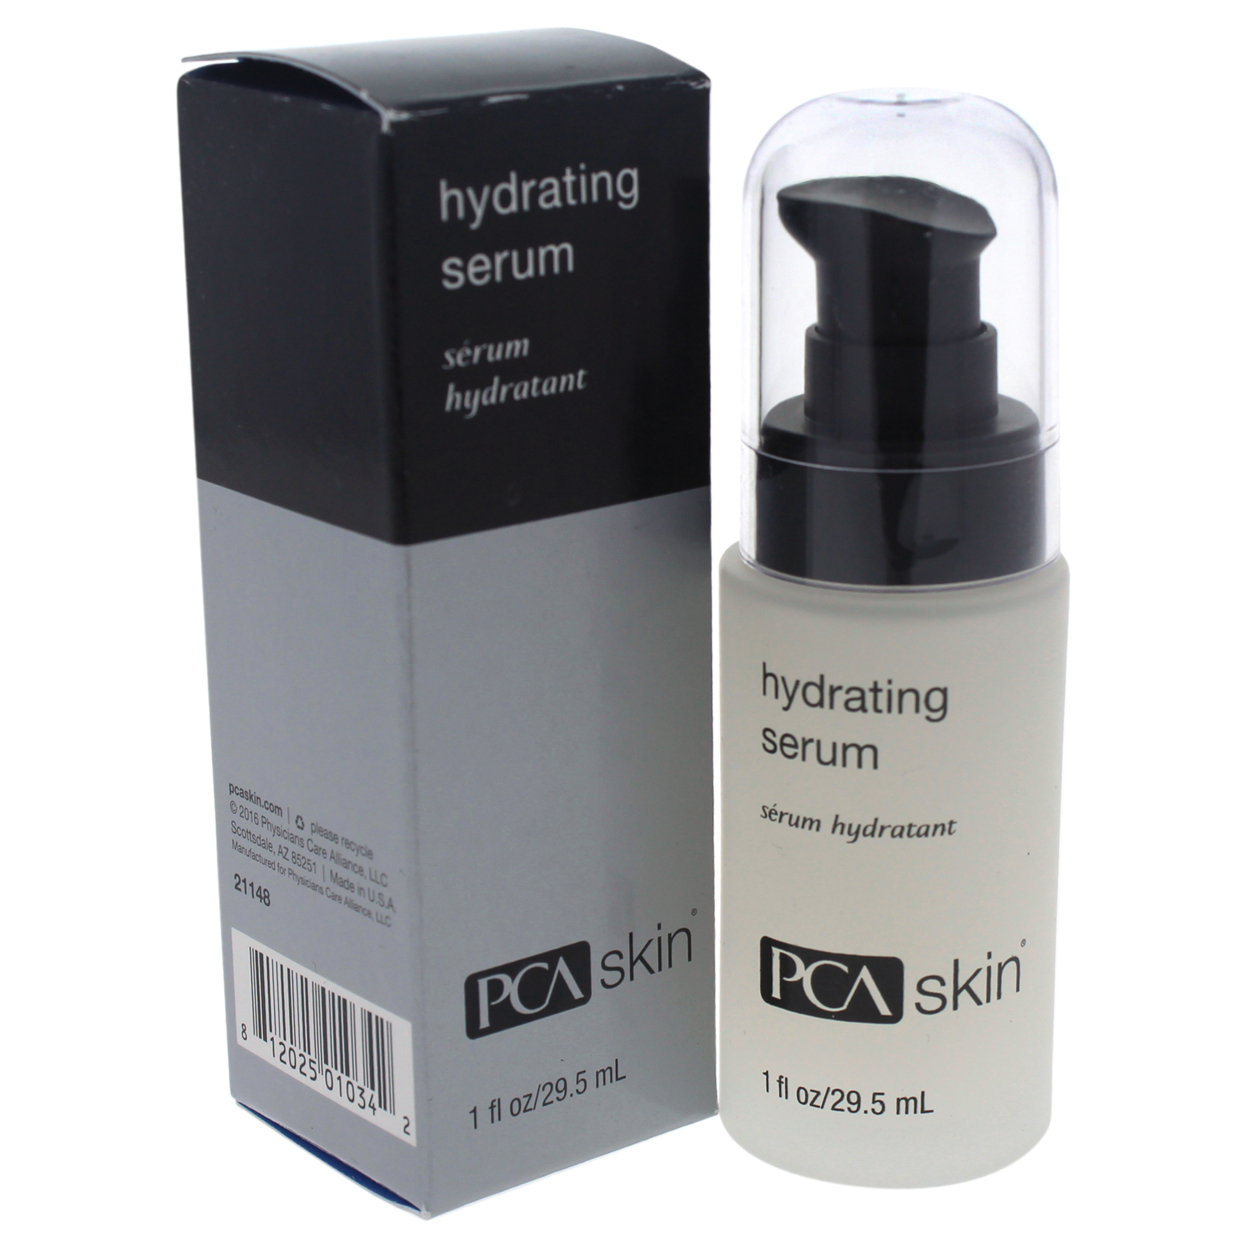 Hydrating Serum By Pca Skin For Unisex 1 Oz Serum